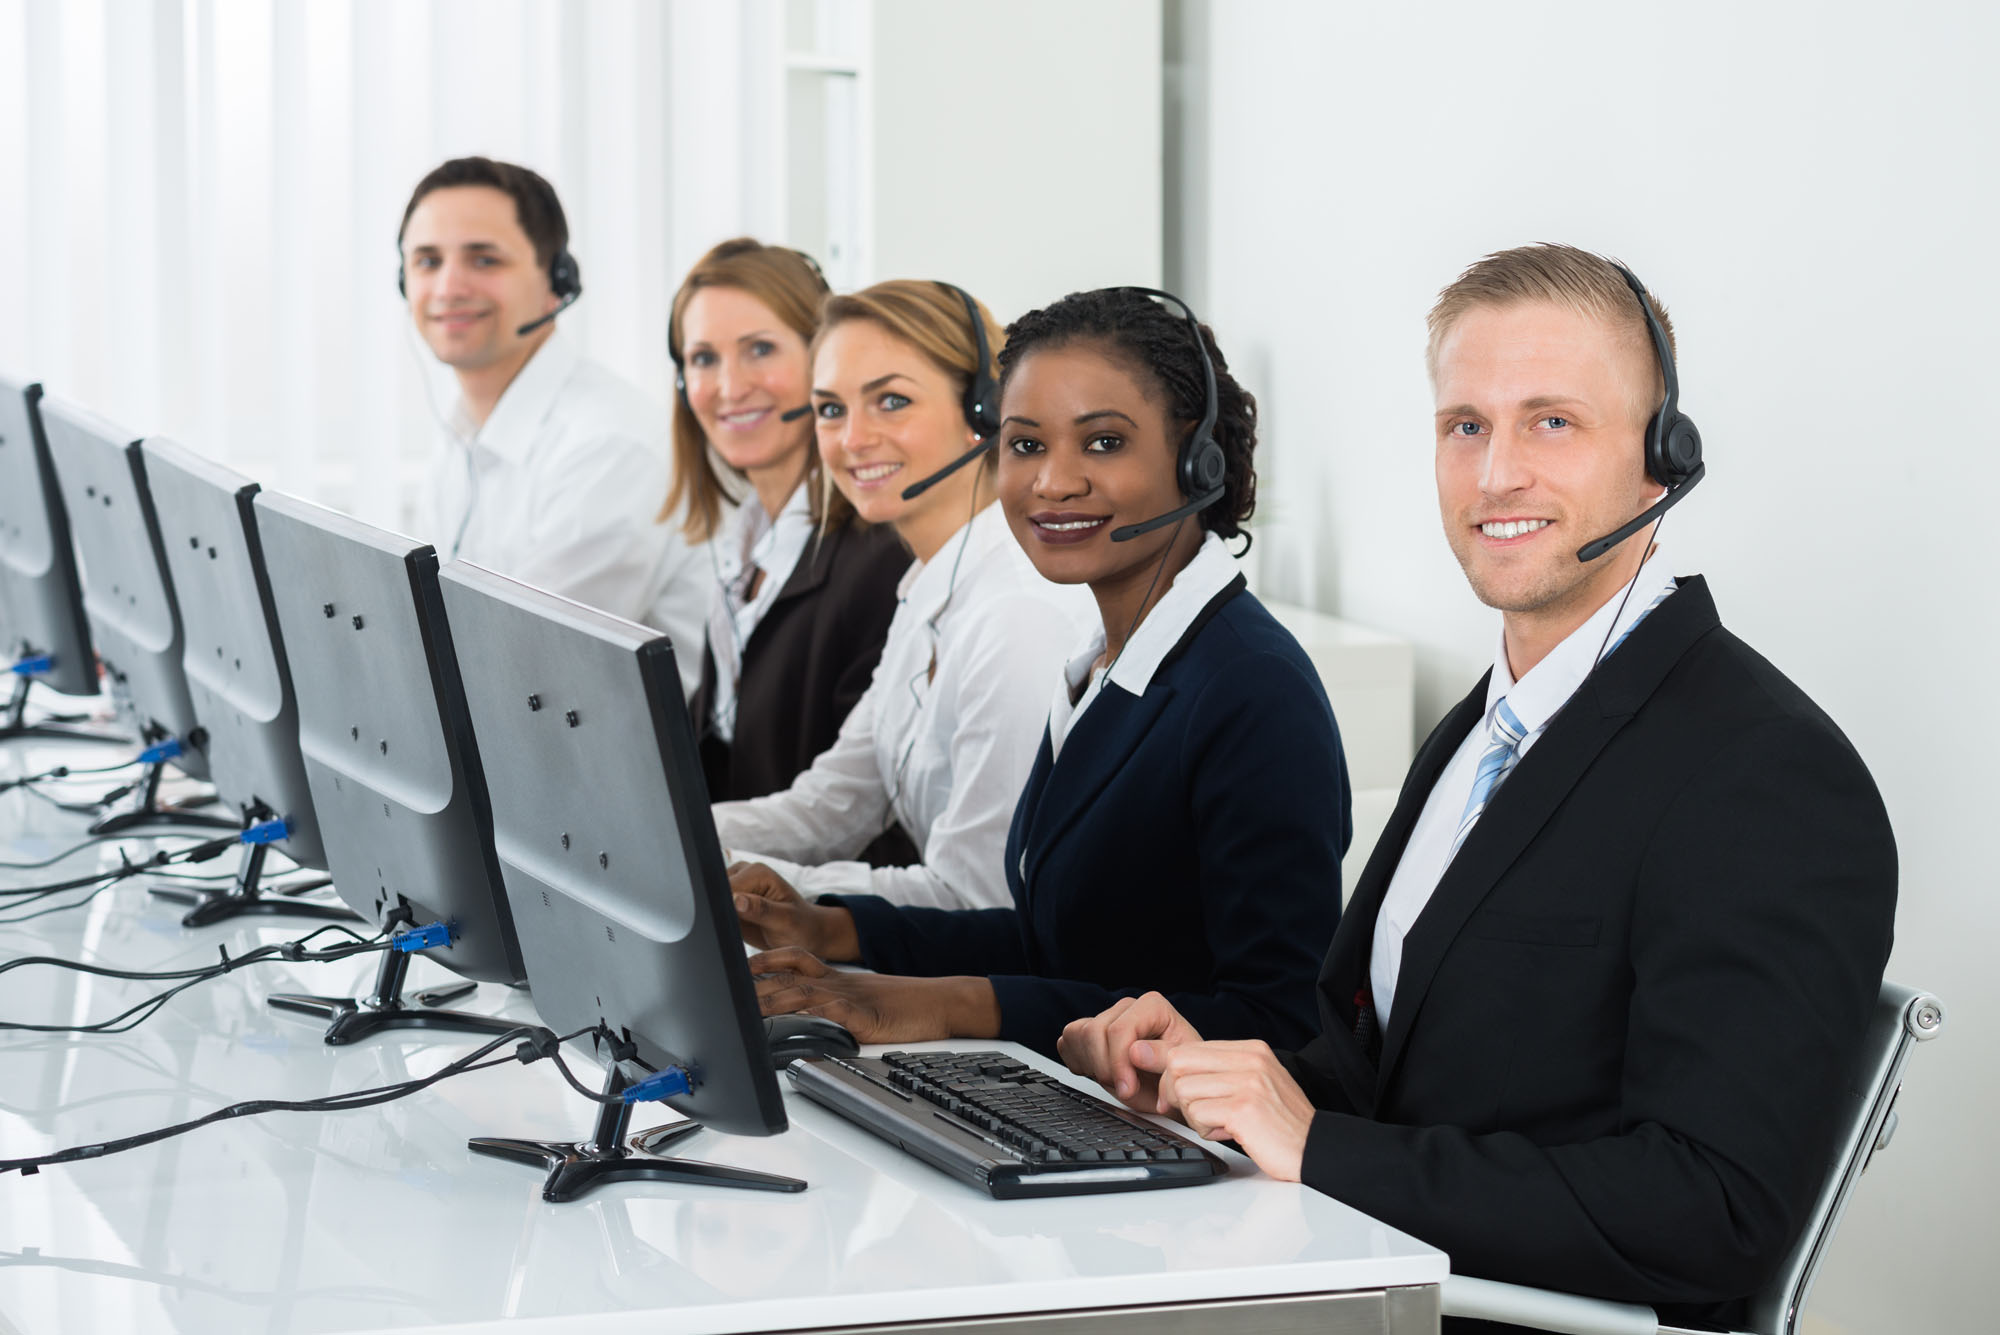 Answering Service Team